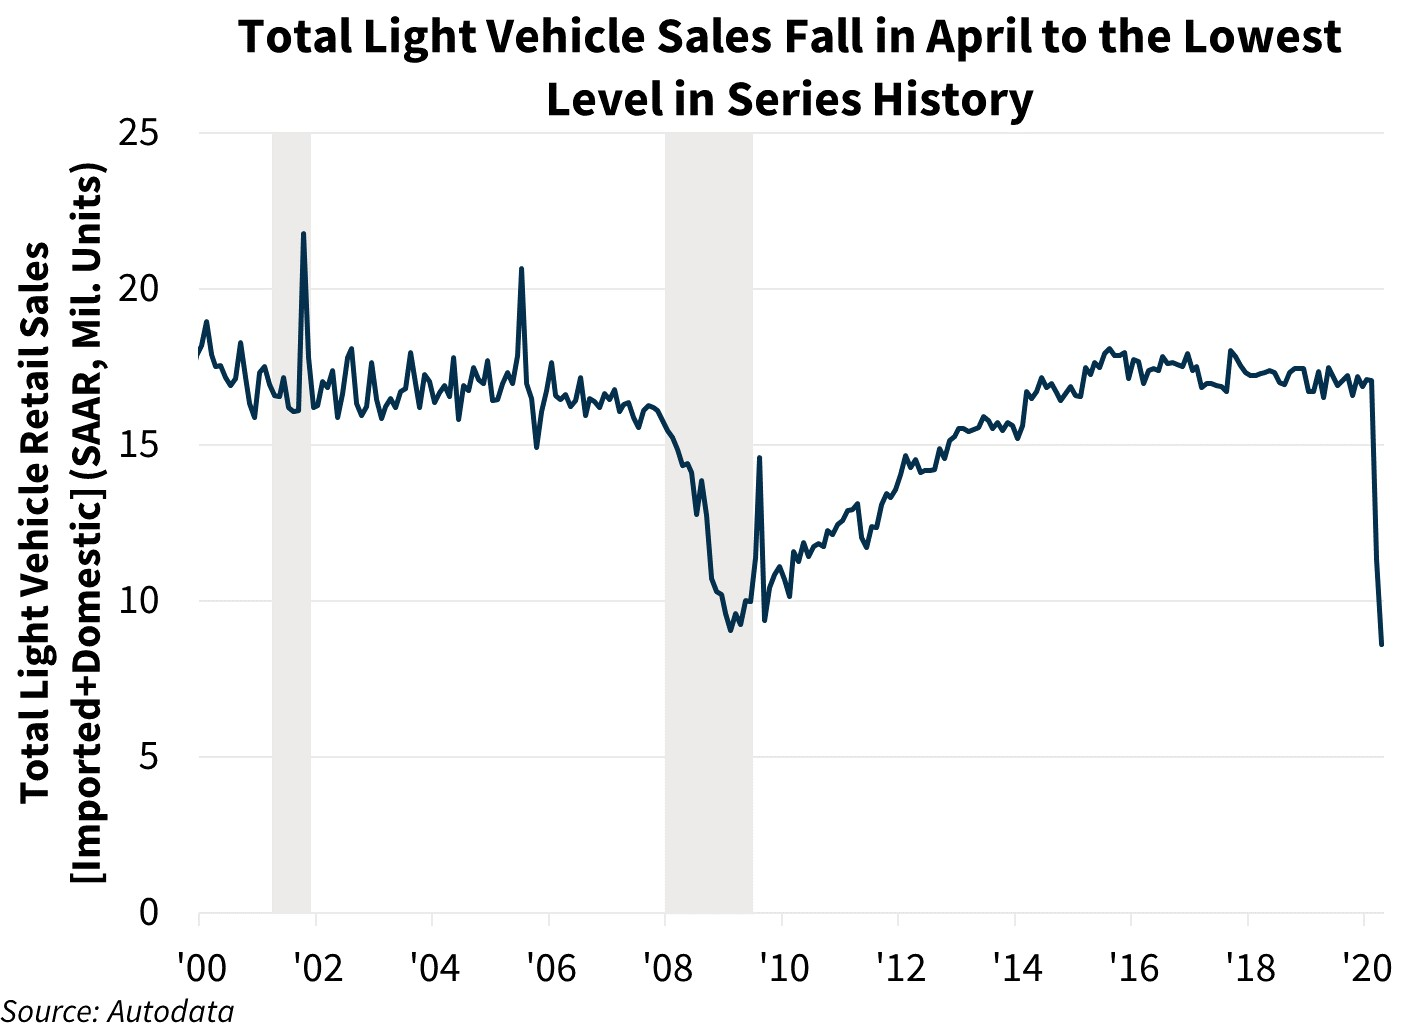 Total Light Vehicle Sales Fall in April to the Lowest Level in Series History